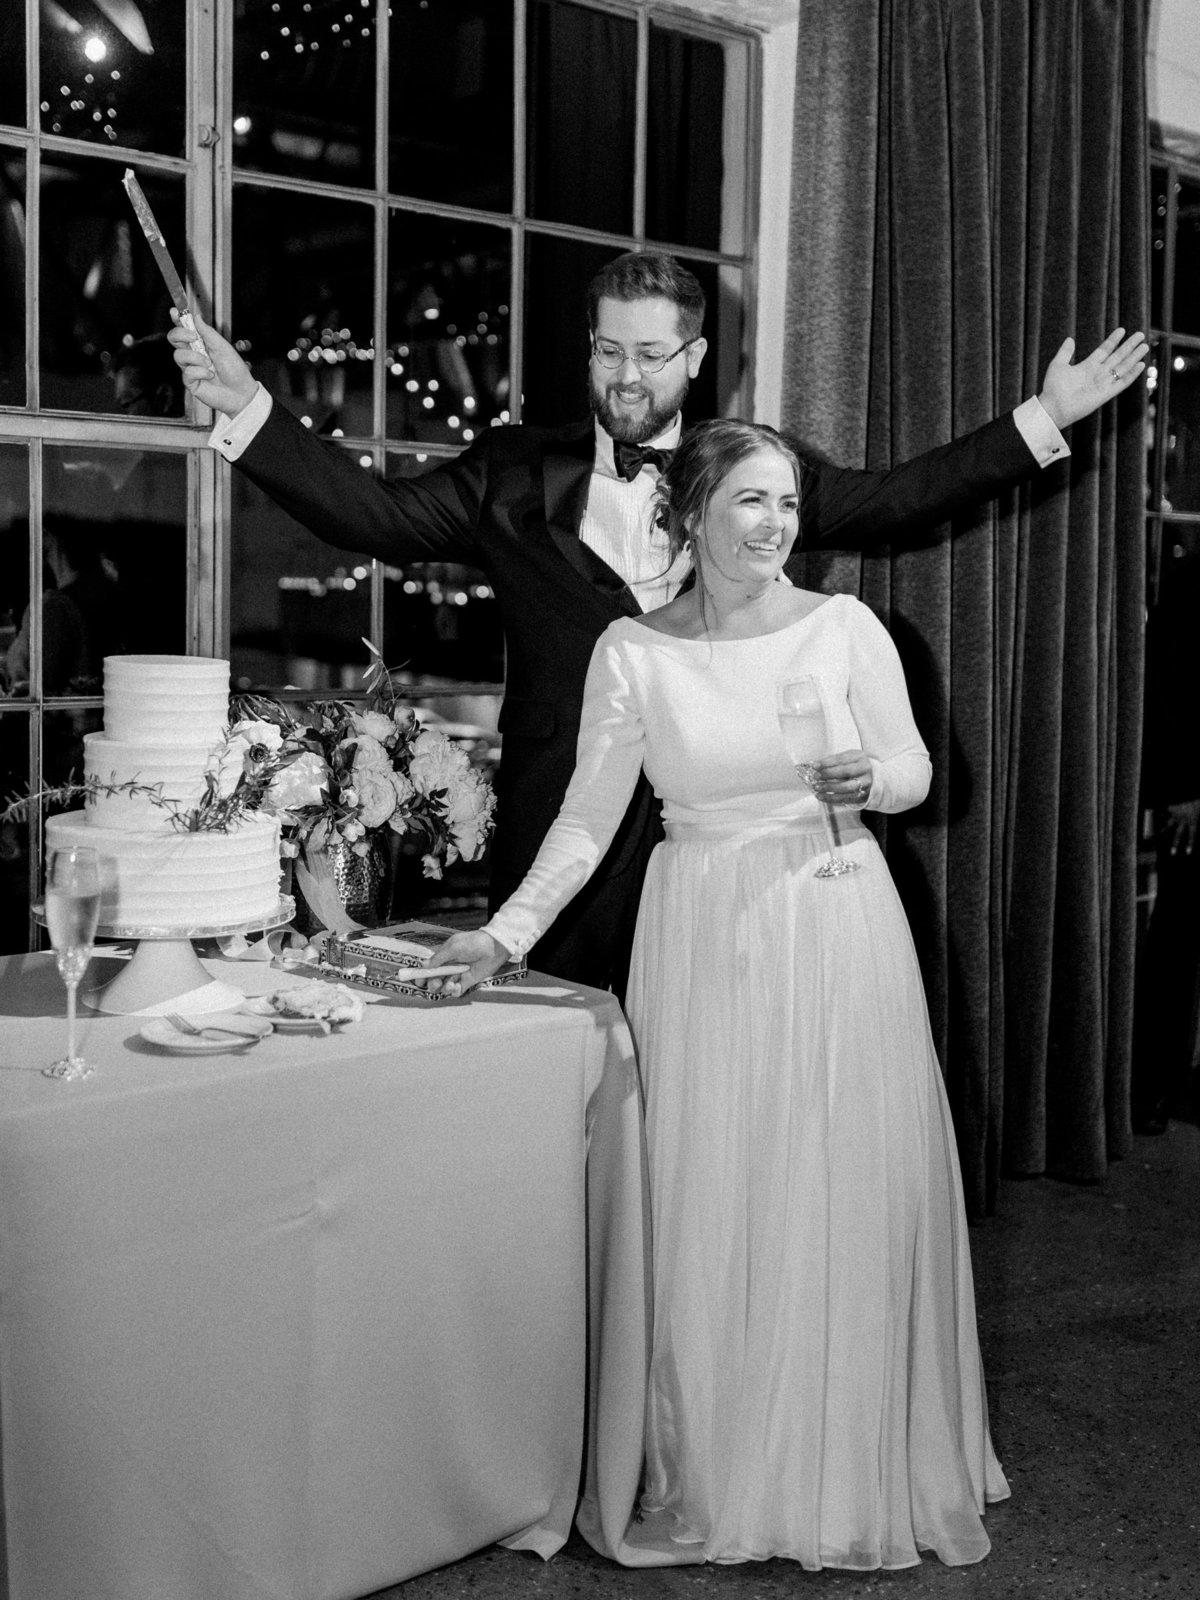 Courtney Hanson Photography - Festive Holiday Wedding in Dallas at Hickory Street Annex-1424